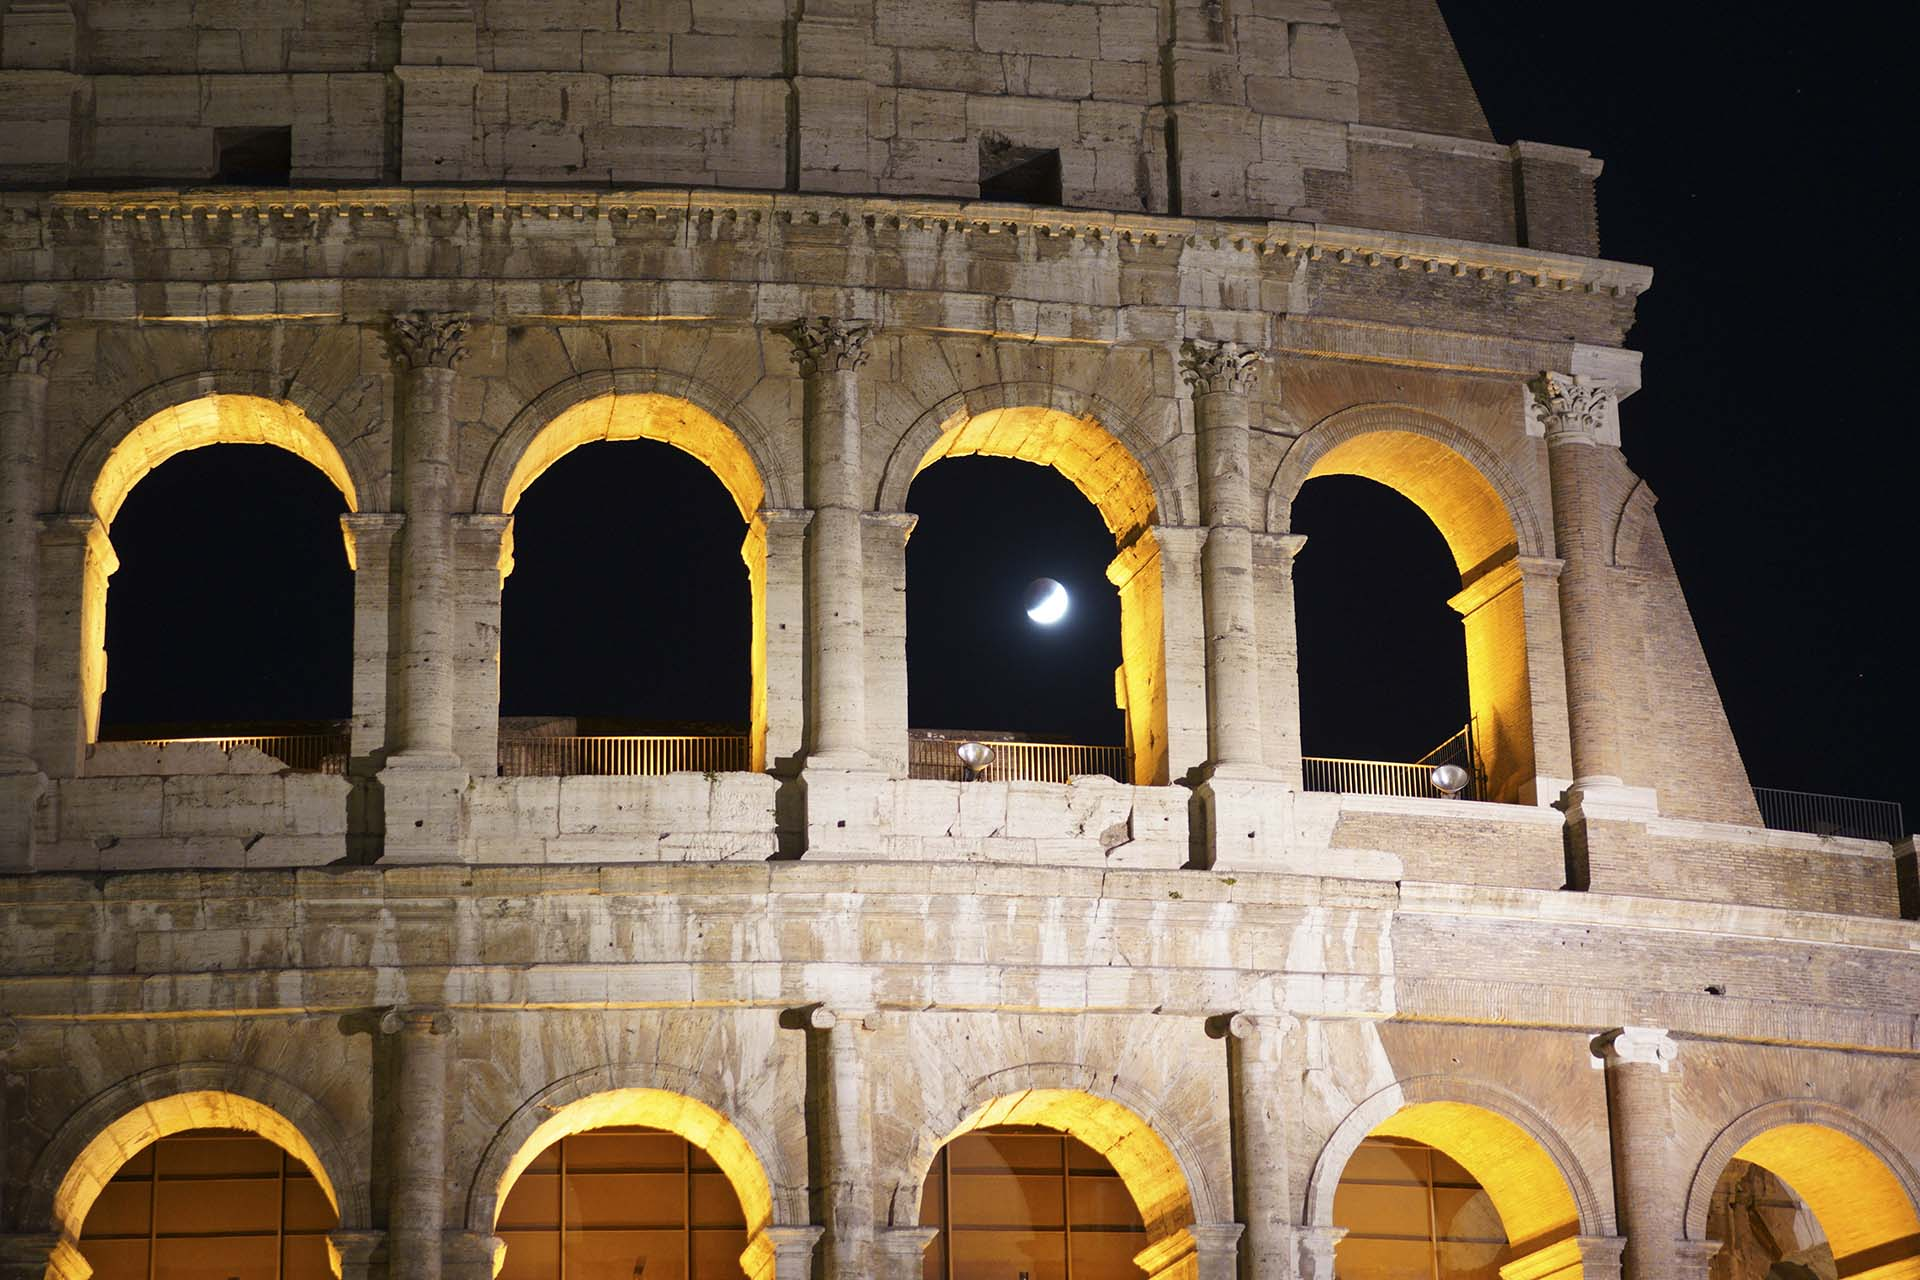 Junto al Coliseo de Roma (AP Photo/Andrew Medichini)